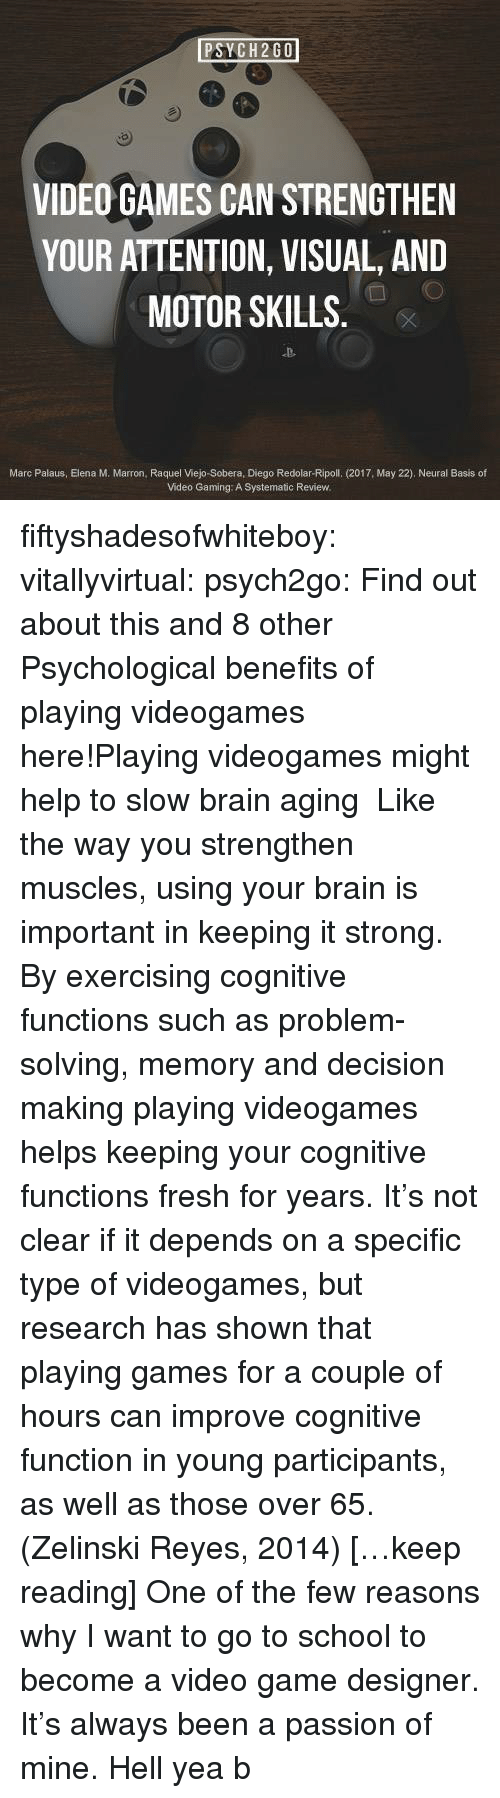 Motorable: PSYCH2GO  VIDEO GAMES CAN STRENGTHEN  YOUR ATTENTION, VISUAL, AND  MOTOR SKILLS  D-  Marc Palaus, Elena M. Marron, Raquel Viejo-Sobera, Diego Redolar-Ripoll. (2017, May 22). Neural Basis of  Video Gaming: A Systematic Review. fiftyshadesofwhiteboy:  vitallyvirtual:  psych2go:  Find out about this and 8 other Psychological benefits of playing videogames here!Playing videogames might help to slow brain aging   Like the way you strengthen muscles, using your brain is important in keeping it strong. By exercising cognitive functions such as problem-solving, memory and decision making playing videogames helps keeping your cognitive functions fresh for years. It's not clear if it depends on a specific type of videogames, but research has shown that playing games for a couple of hours can improve cognitive function in young participants, as well as those over 65. (Zelinski  Reyes, 2014) […keep reading]  One of the few reasons why I want to go to school to become a video game designer. It's always been a passion of mine.  Hell yea b